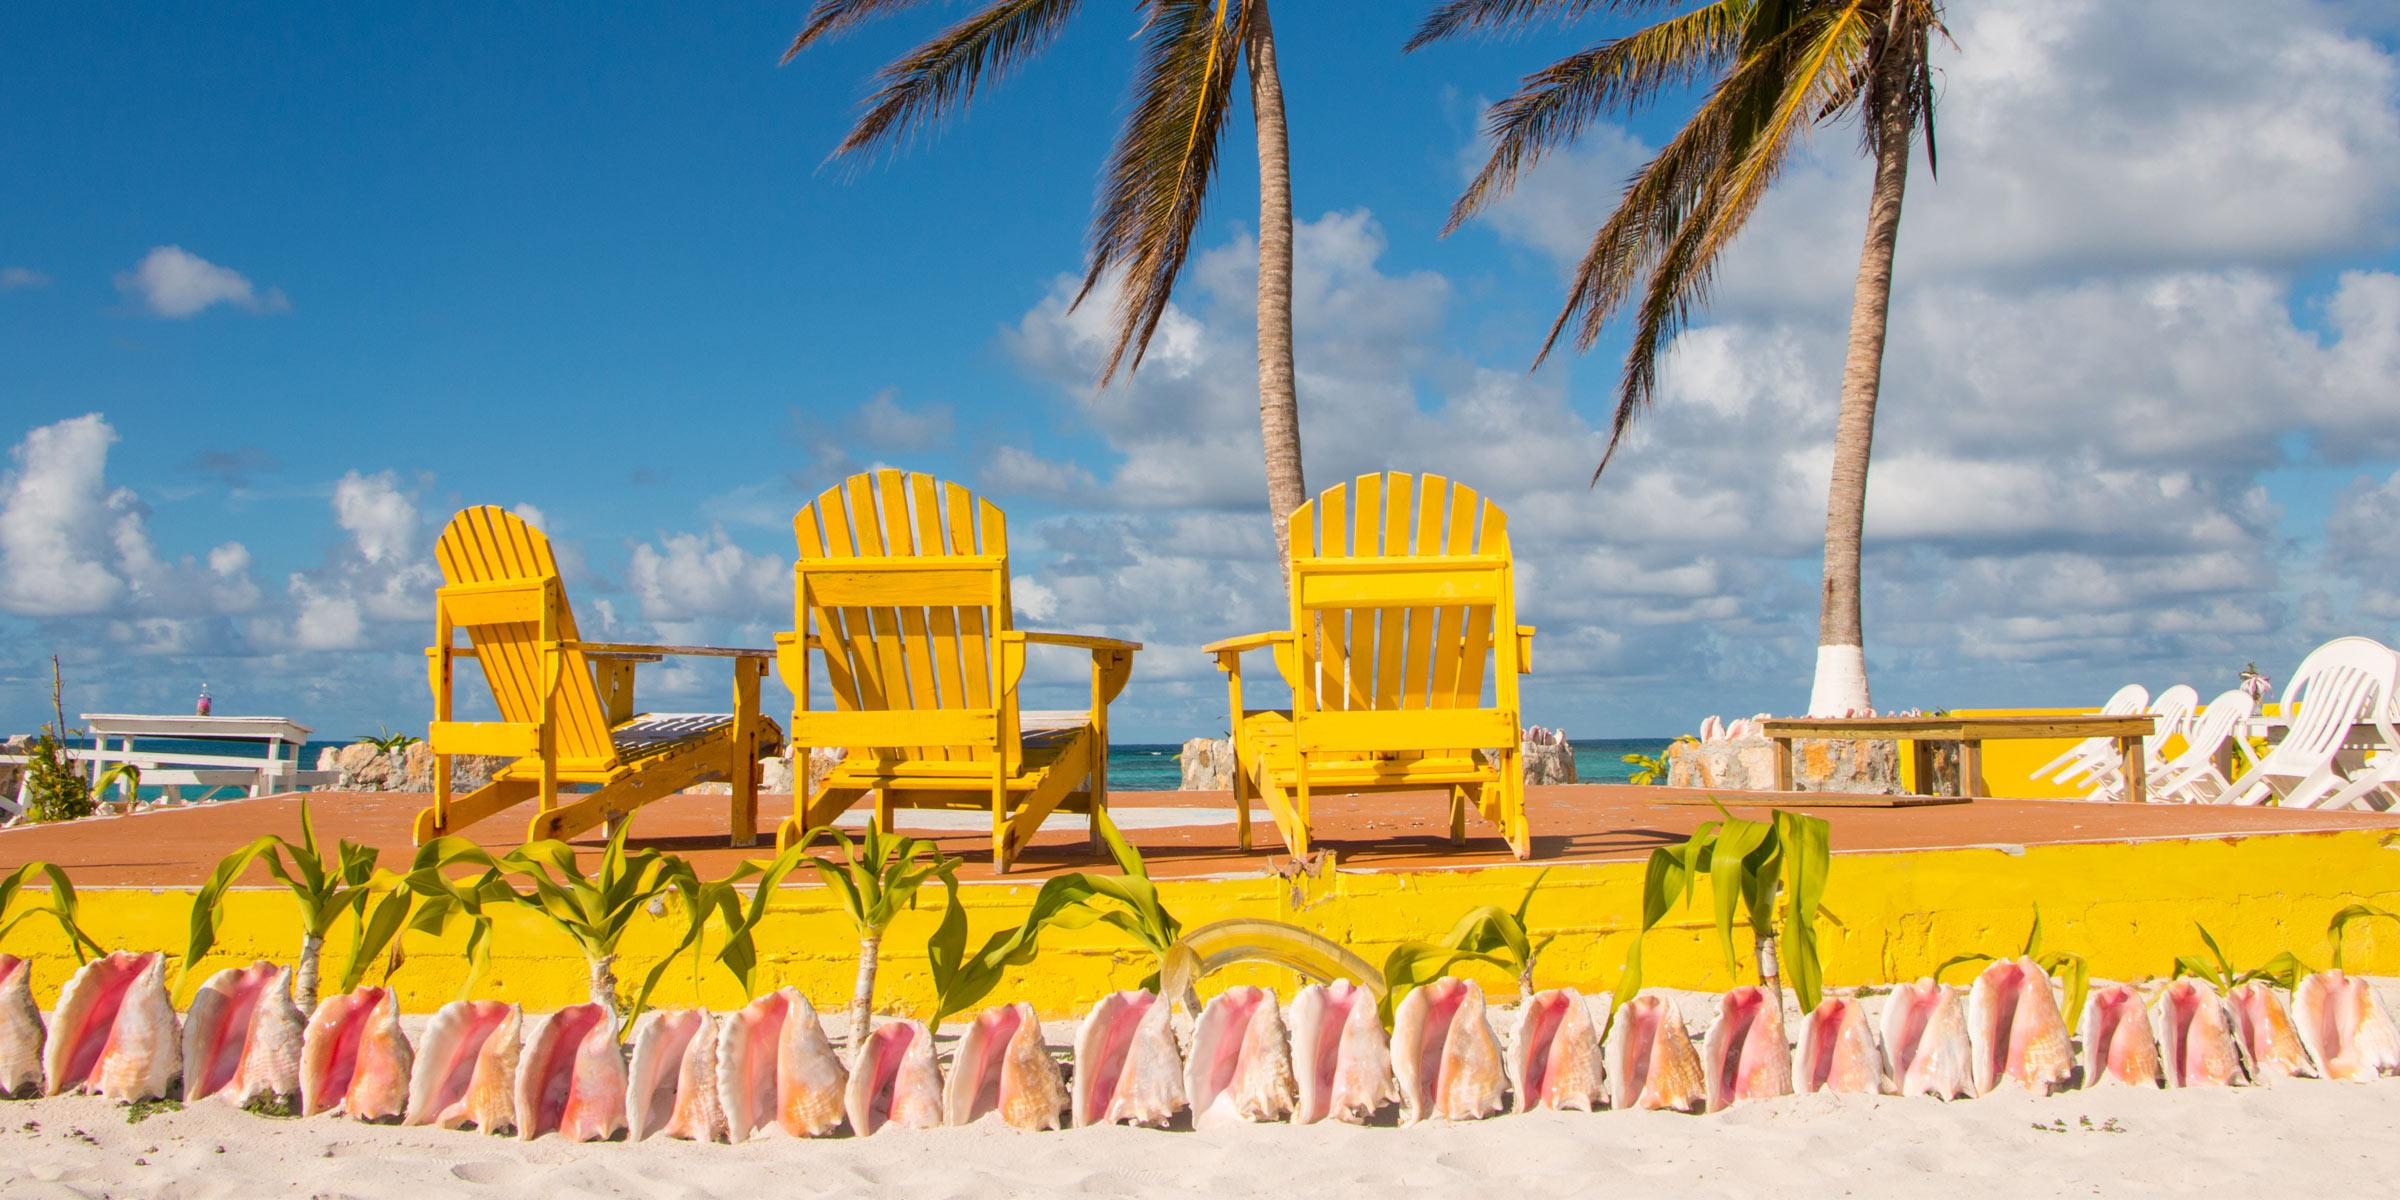 Colorful beach chairs at Cow Wreck Beach on Anegada, BVI